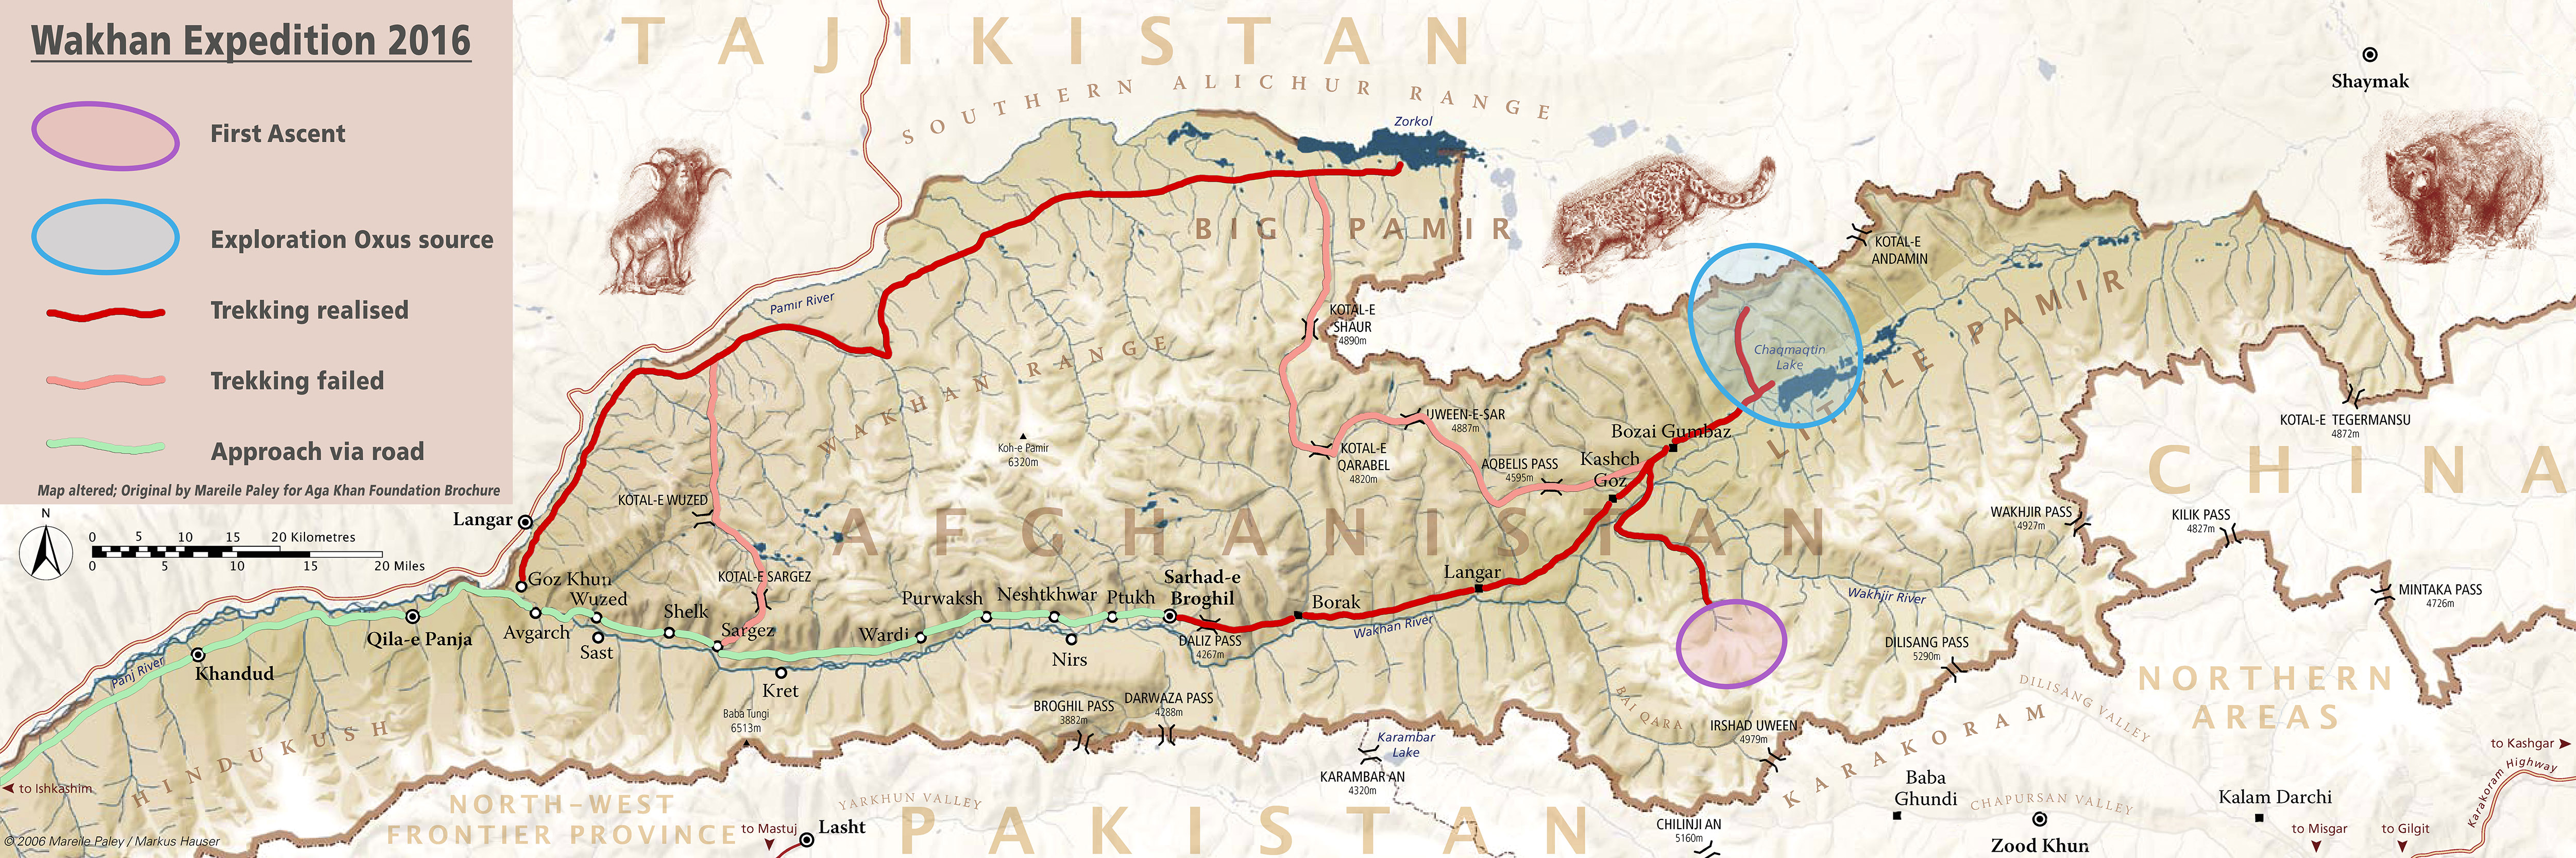 Trekking routes of our expedition